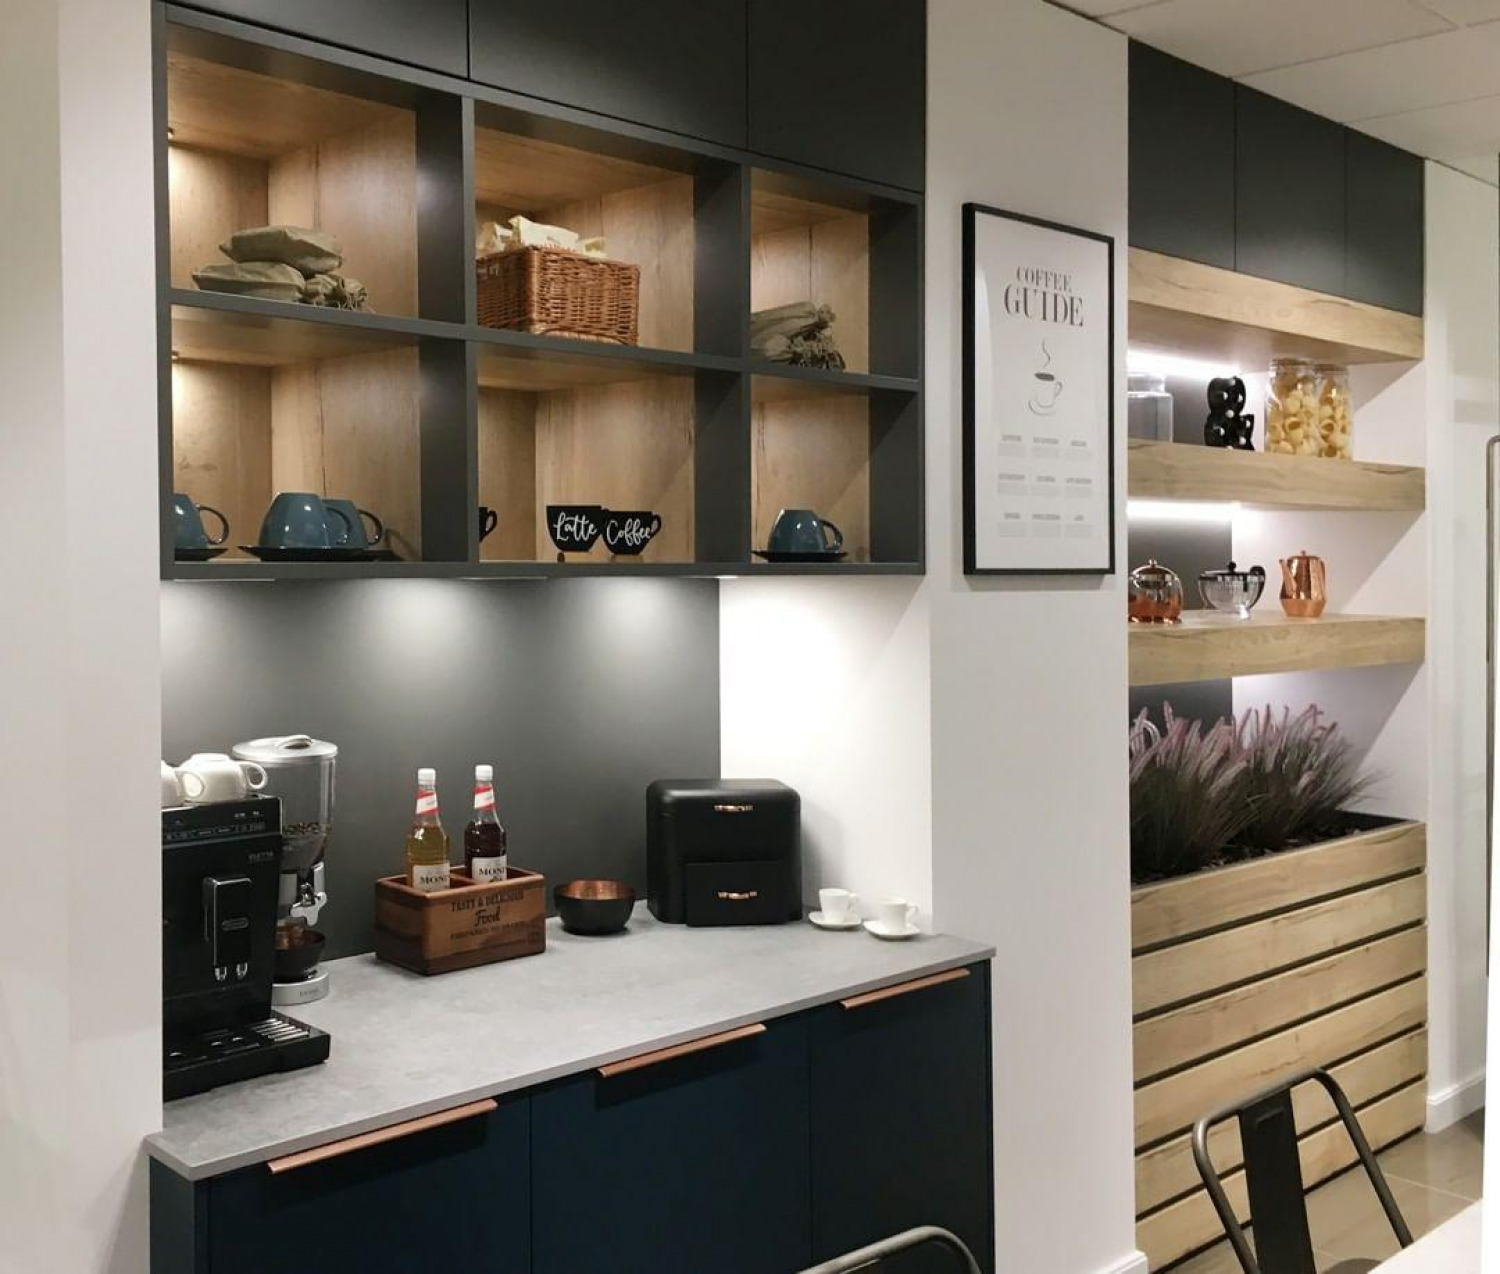 using storage shelves in your kitchen